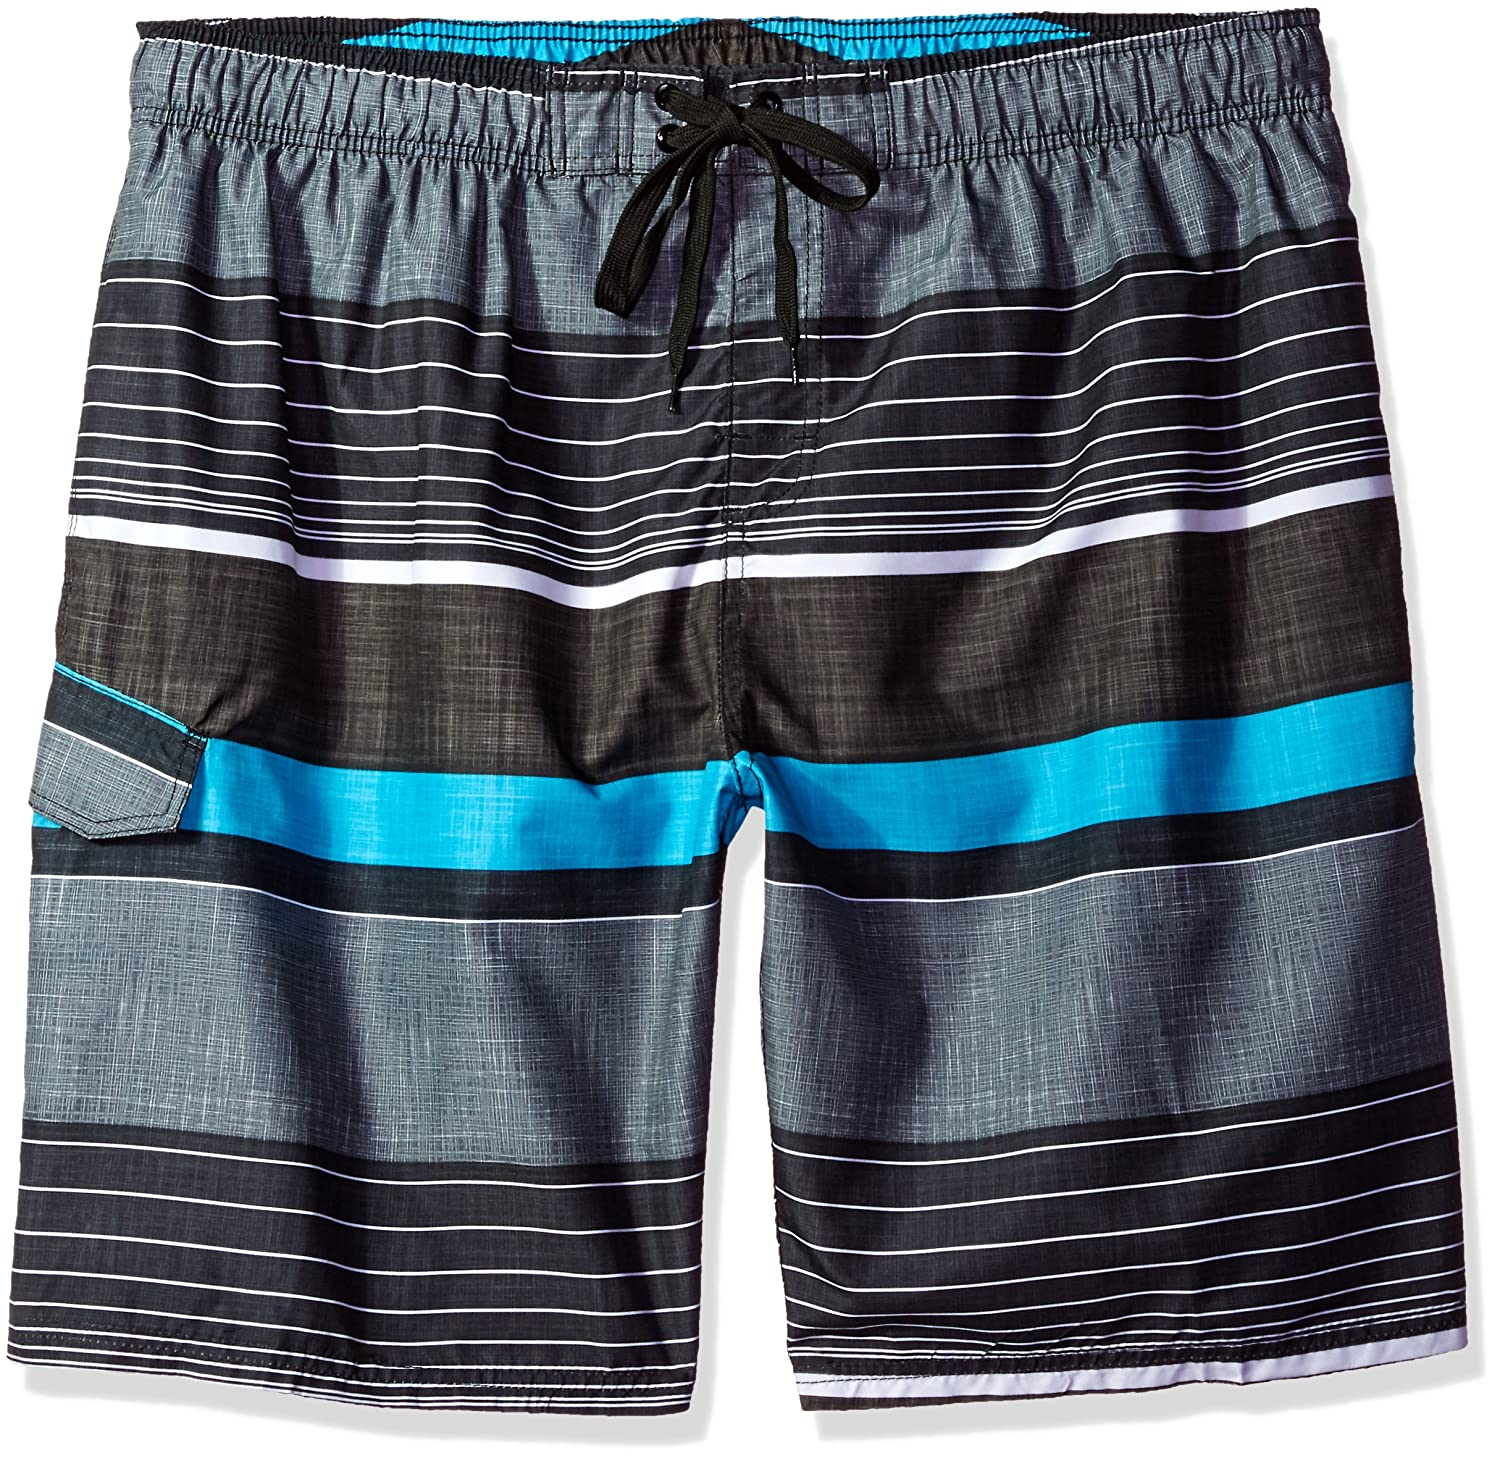 246fa7cbc9 UPF 50+ quick dry microfiber: lightweight and durable for your most  comfortable pair of swim trunks. Triple needle side seams and rises make Kanu  Surf ...